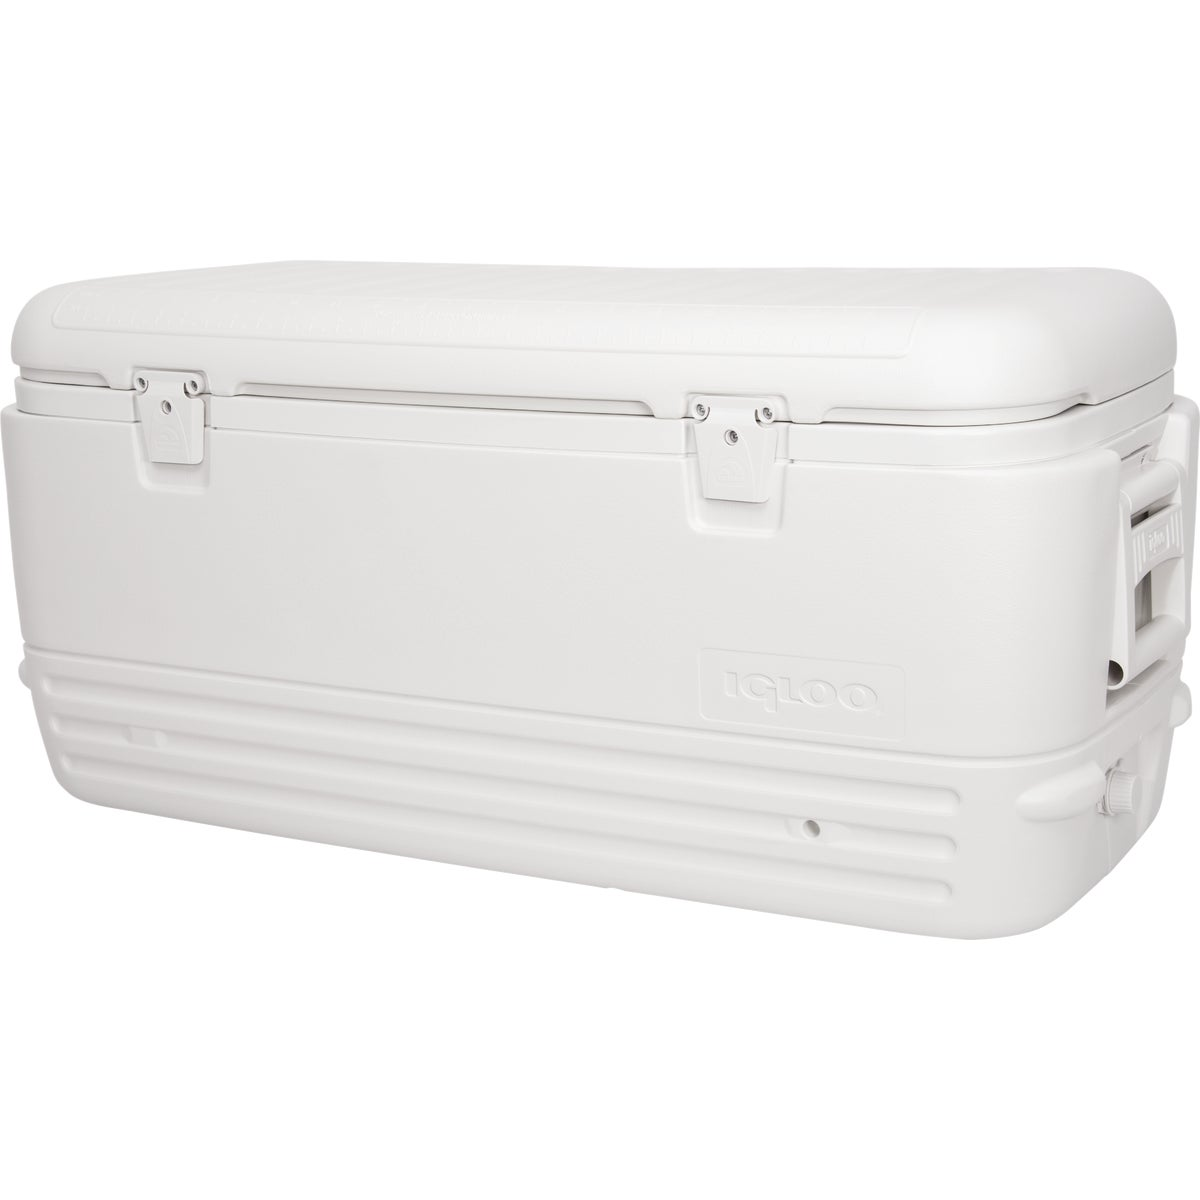 120 QT POLAR - 44577 by Igloo Corp